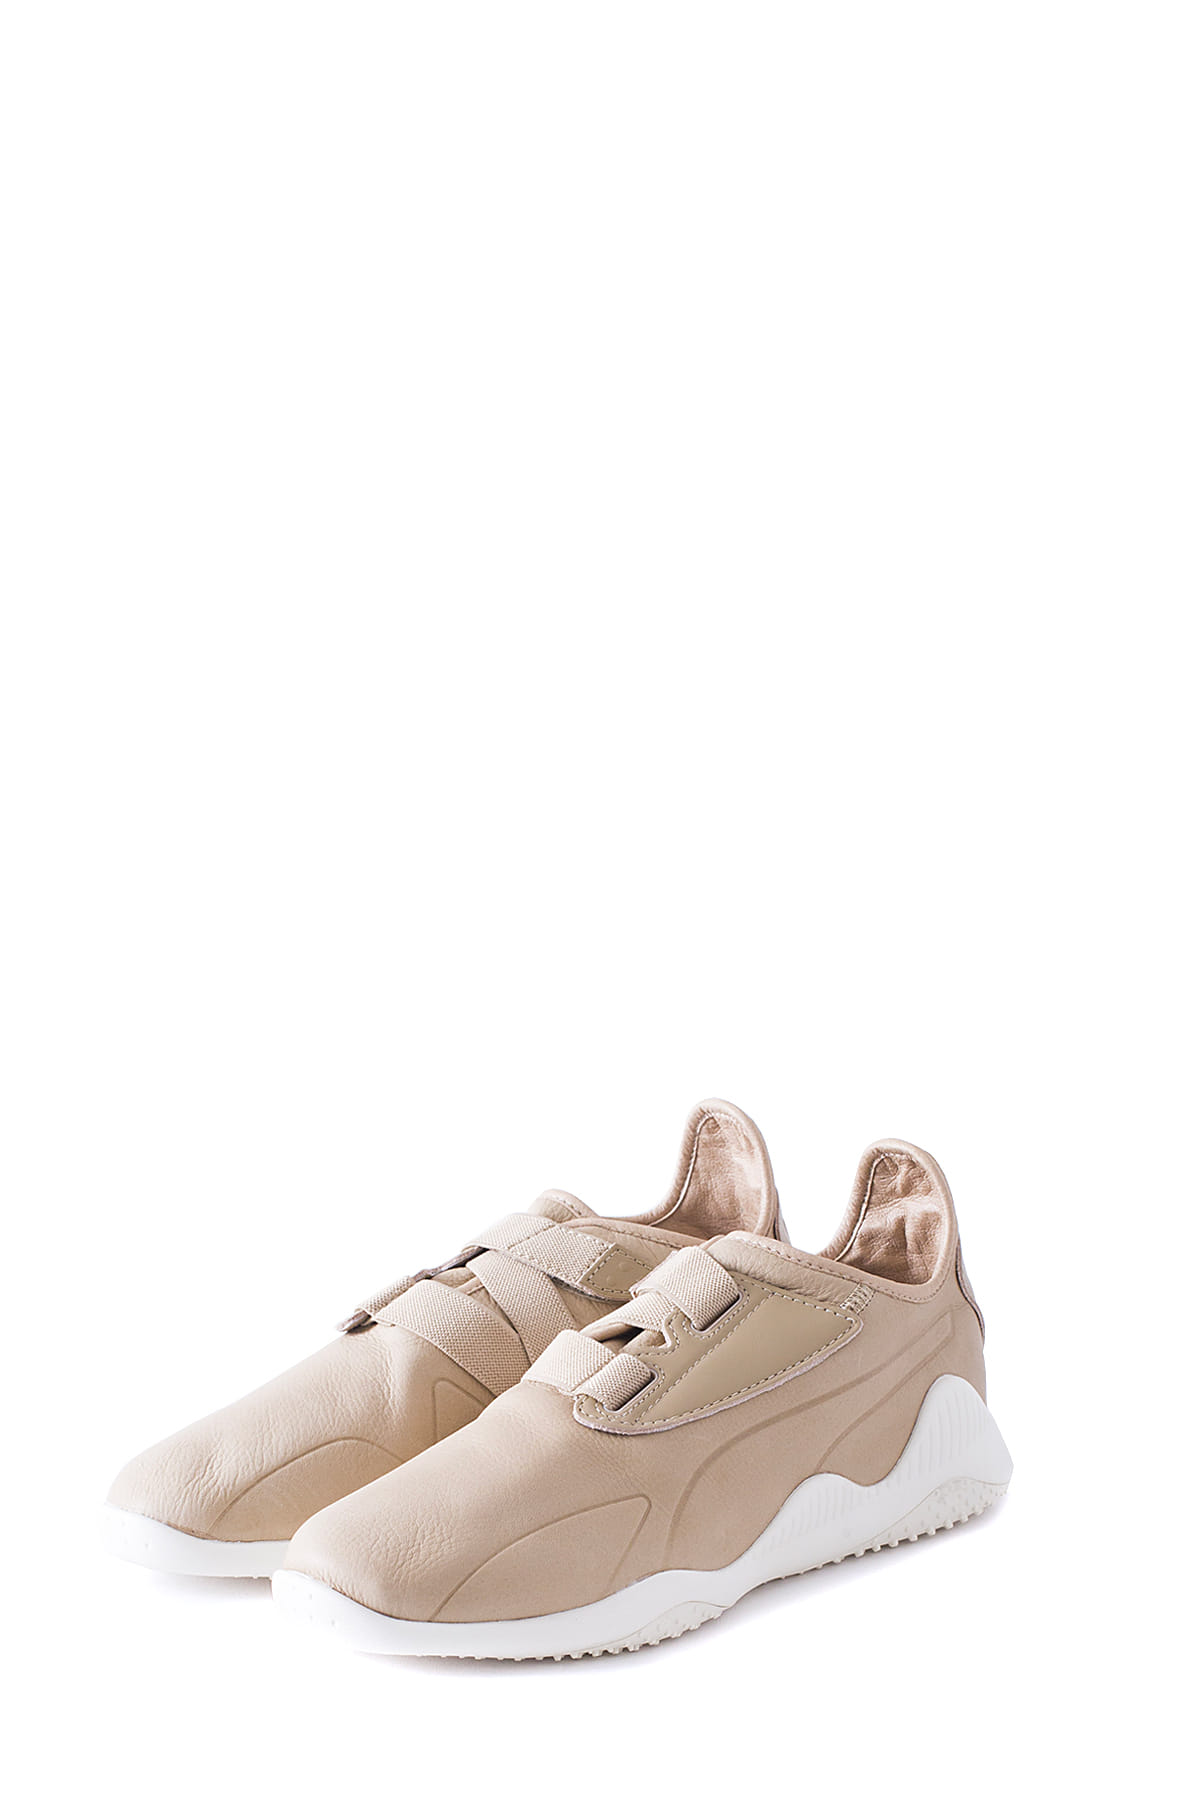 PUMA : Mostro Premium (Safari / Whisper White)